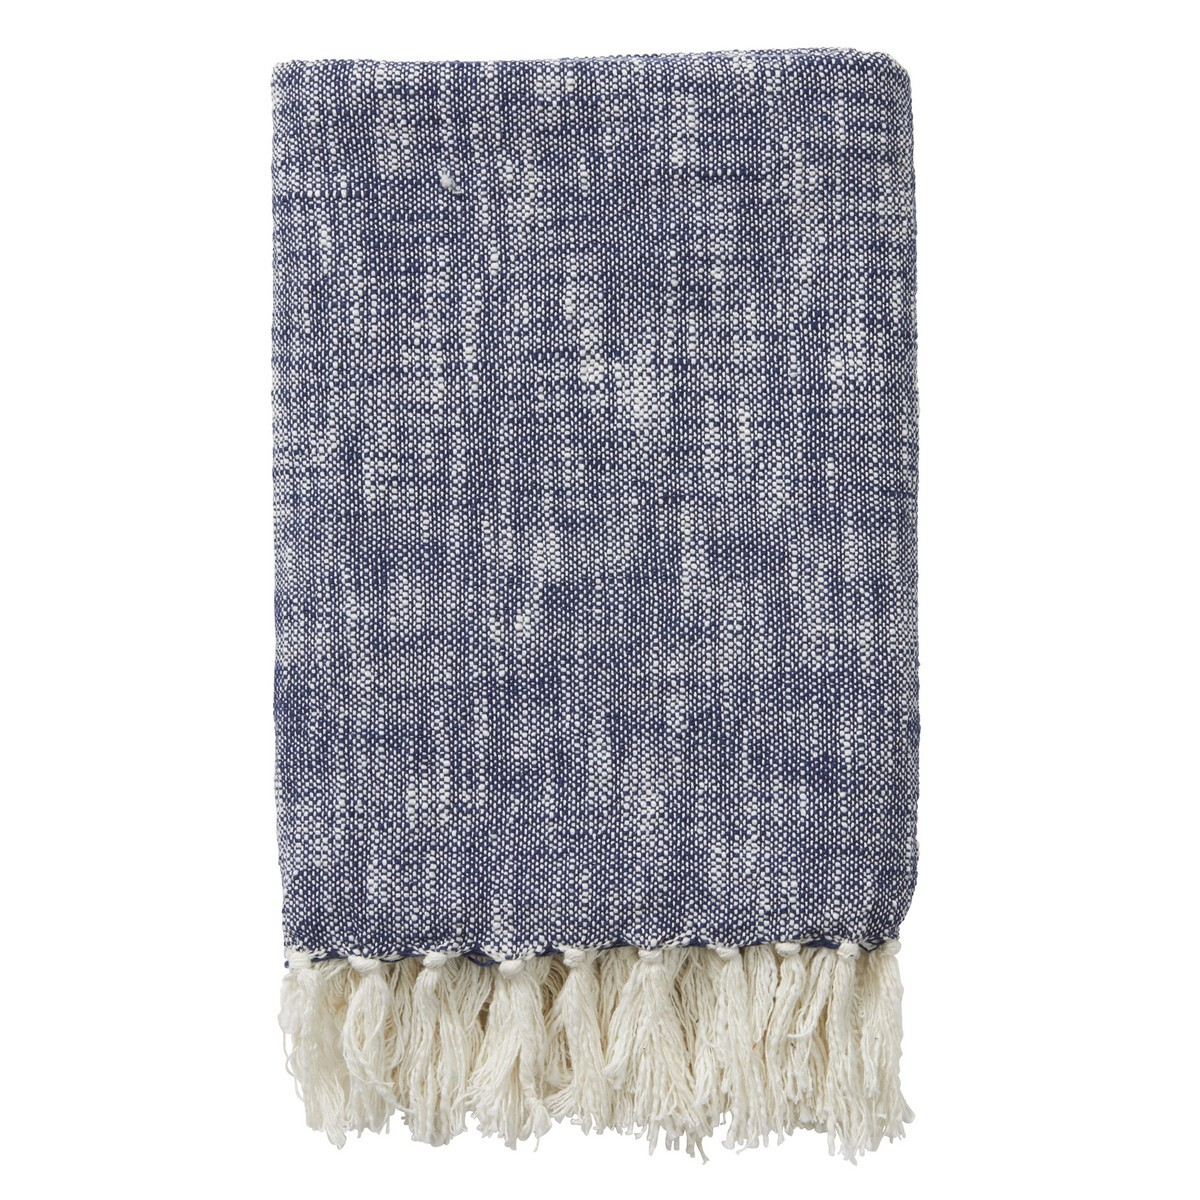 Benita Cotton Throw, 125x150cm, Blue